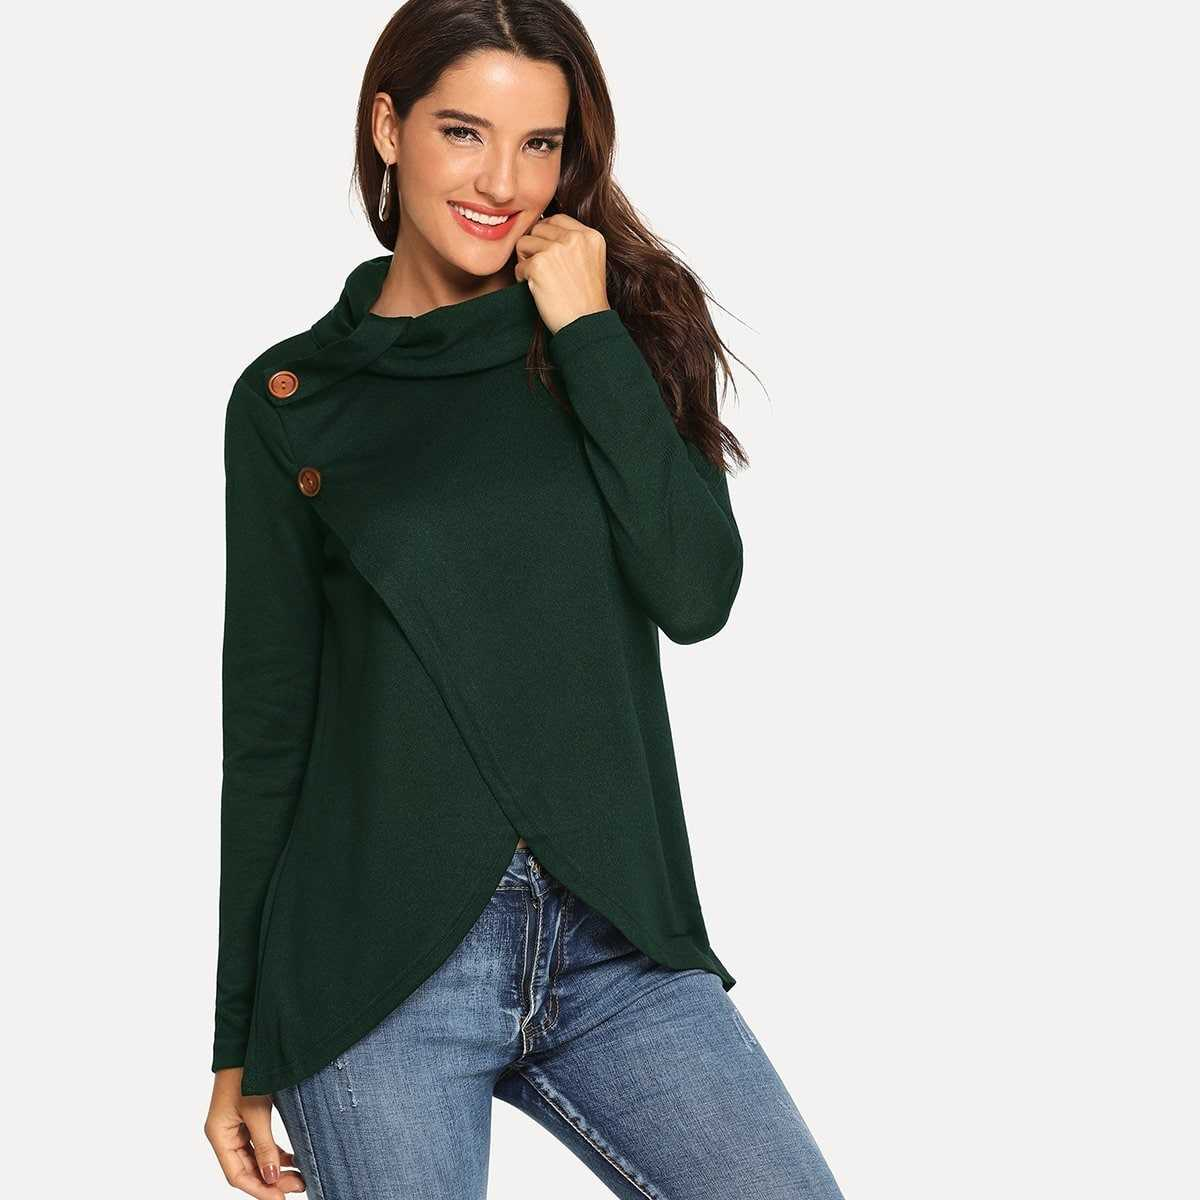 Wrap Detail Button Decoration Sweater in Green by ROMWE on GOOFASH